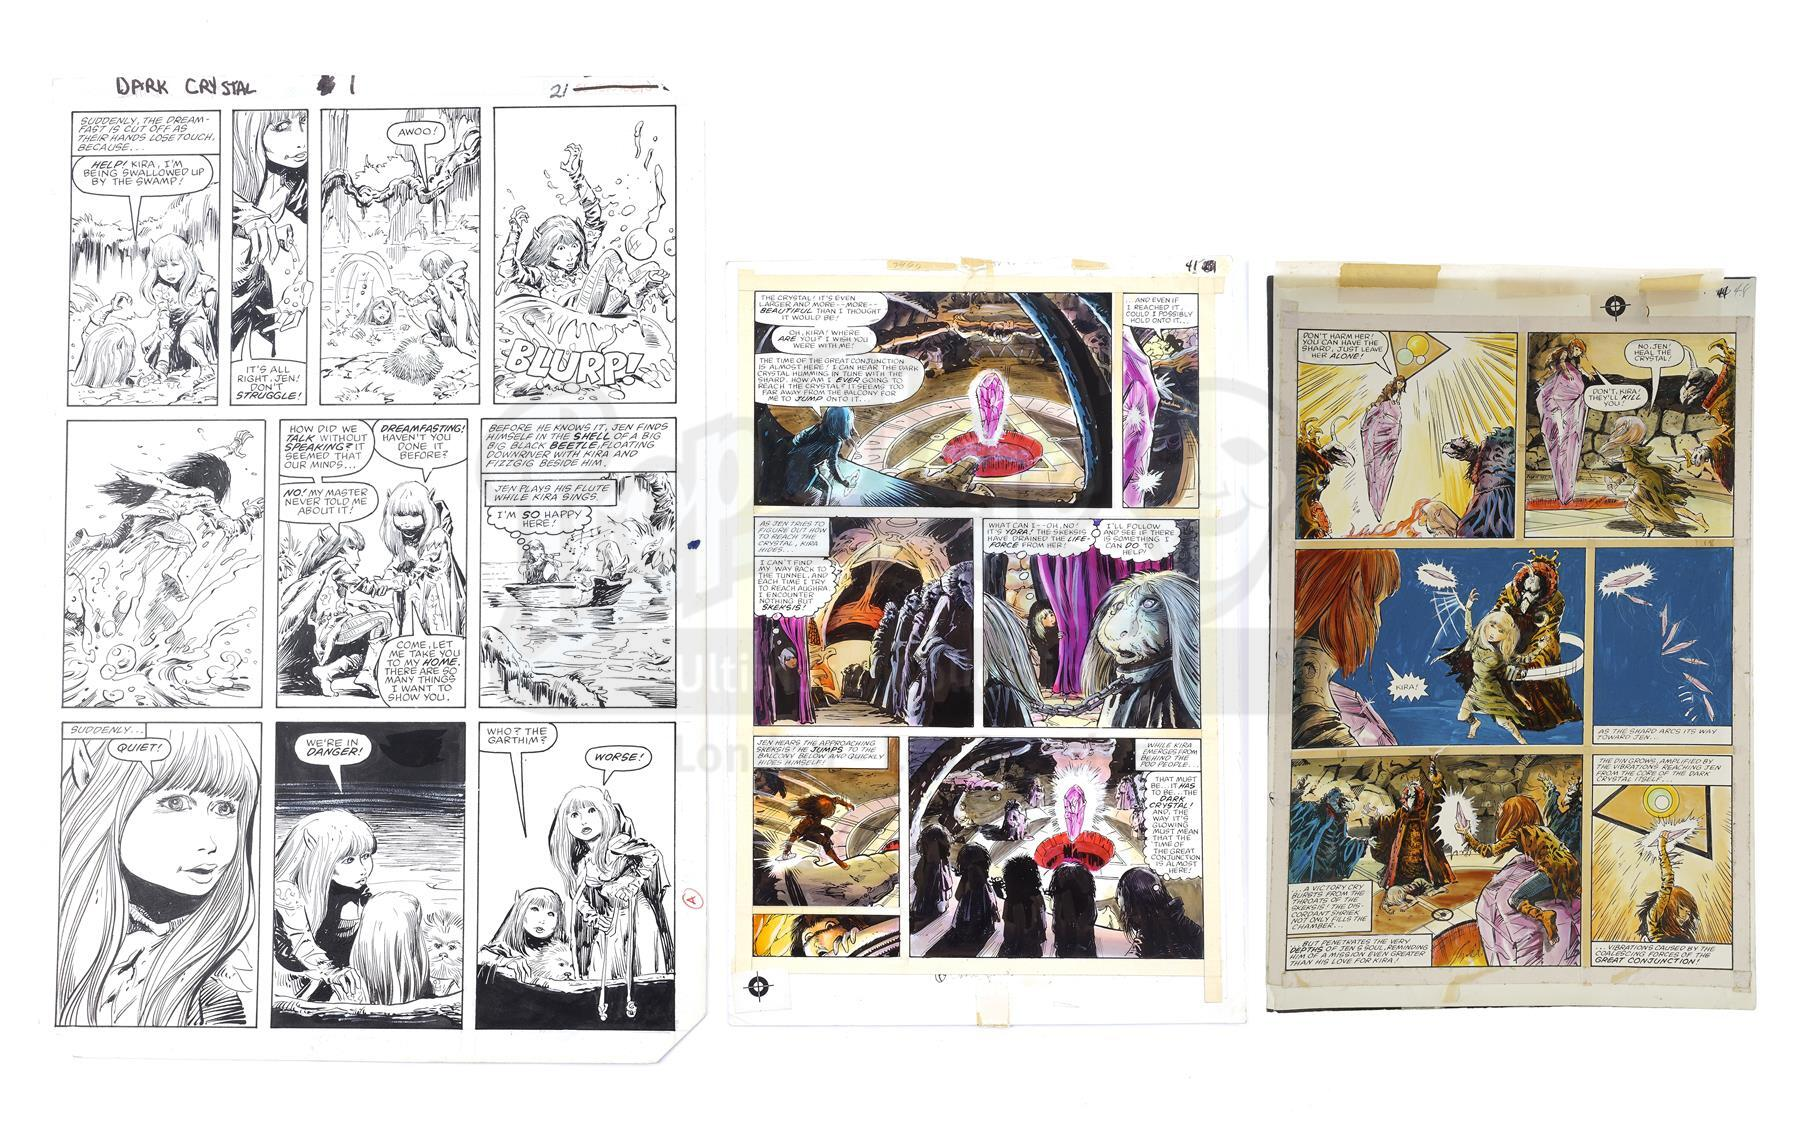 Lot # 602: THE DARK CRYSTAL - The Dark Crystal No. 1 Page 21 and No. 2 Pages 41 and 48 by Bret Blevi